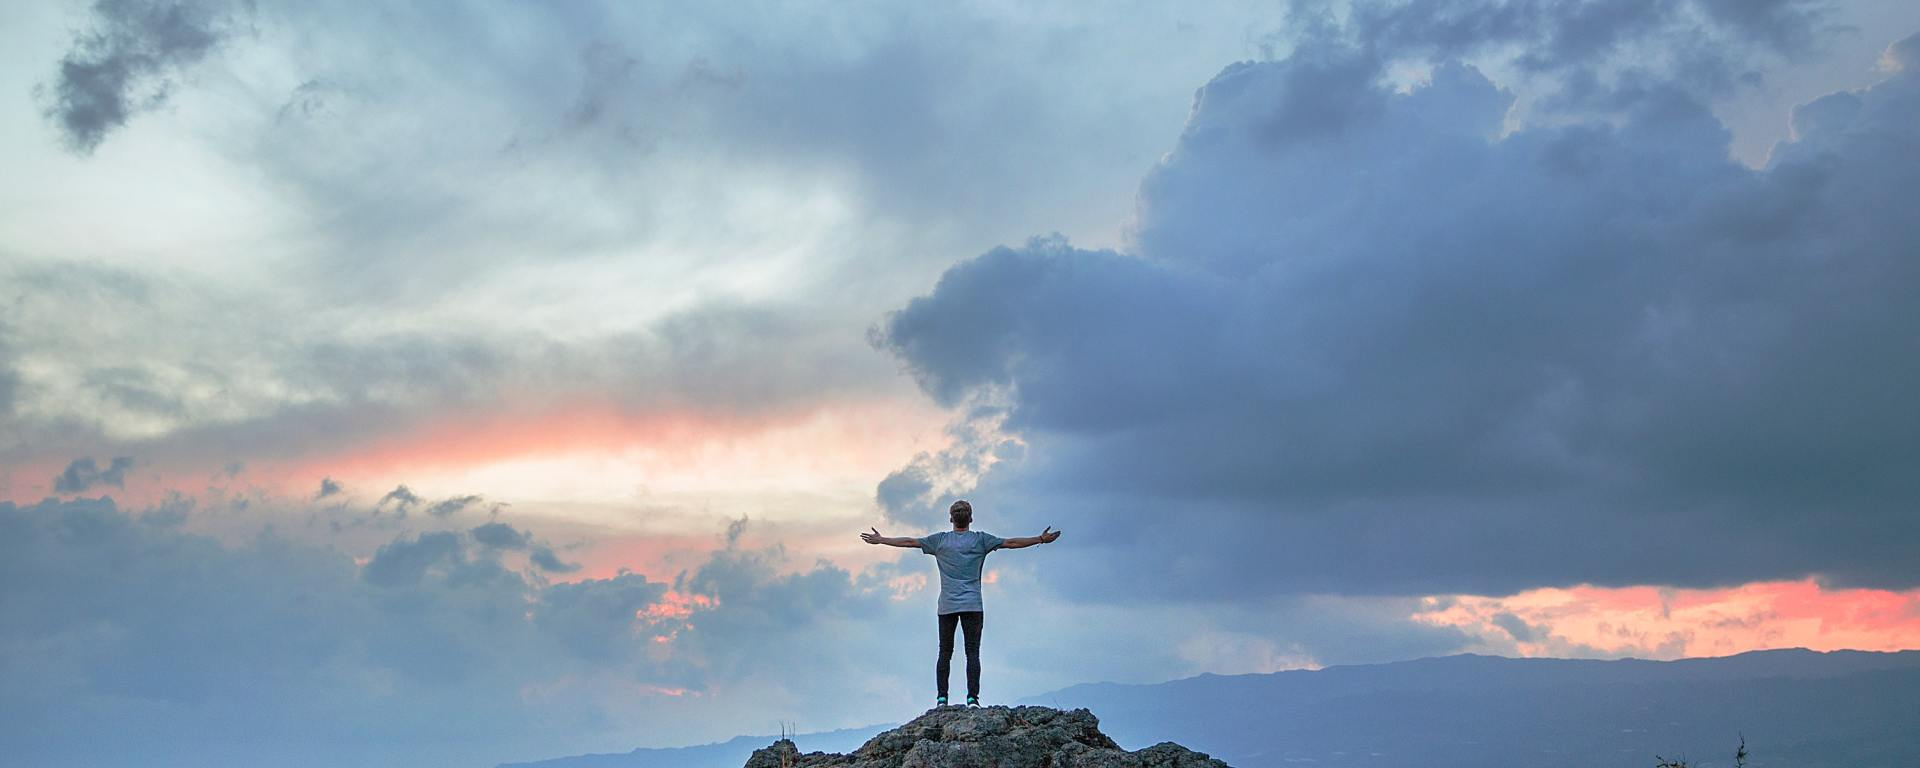 An image of a man on a cliff, holding out his arms to the sky.